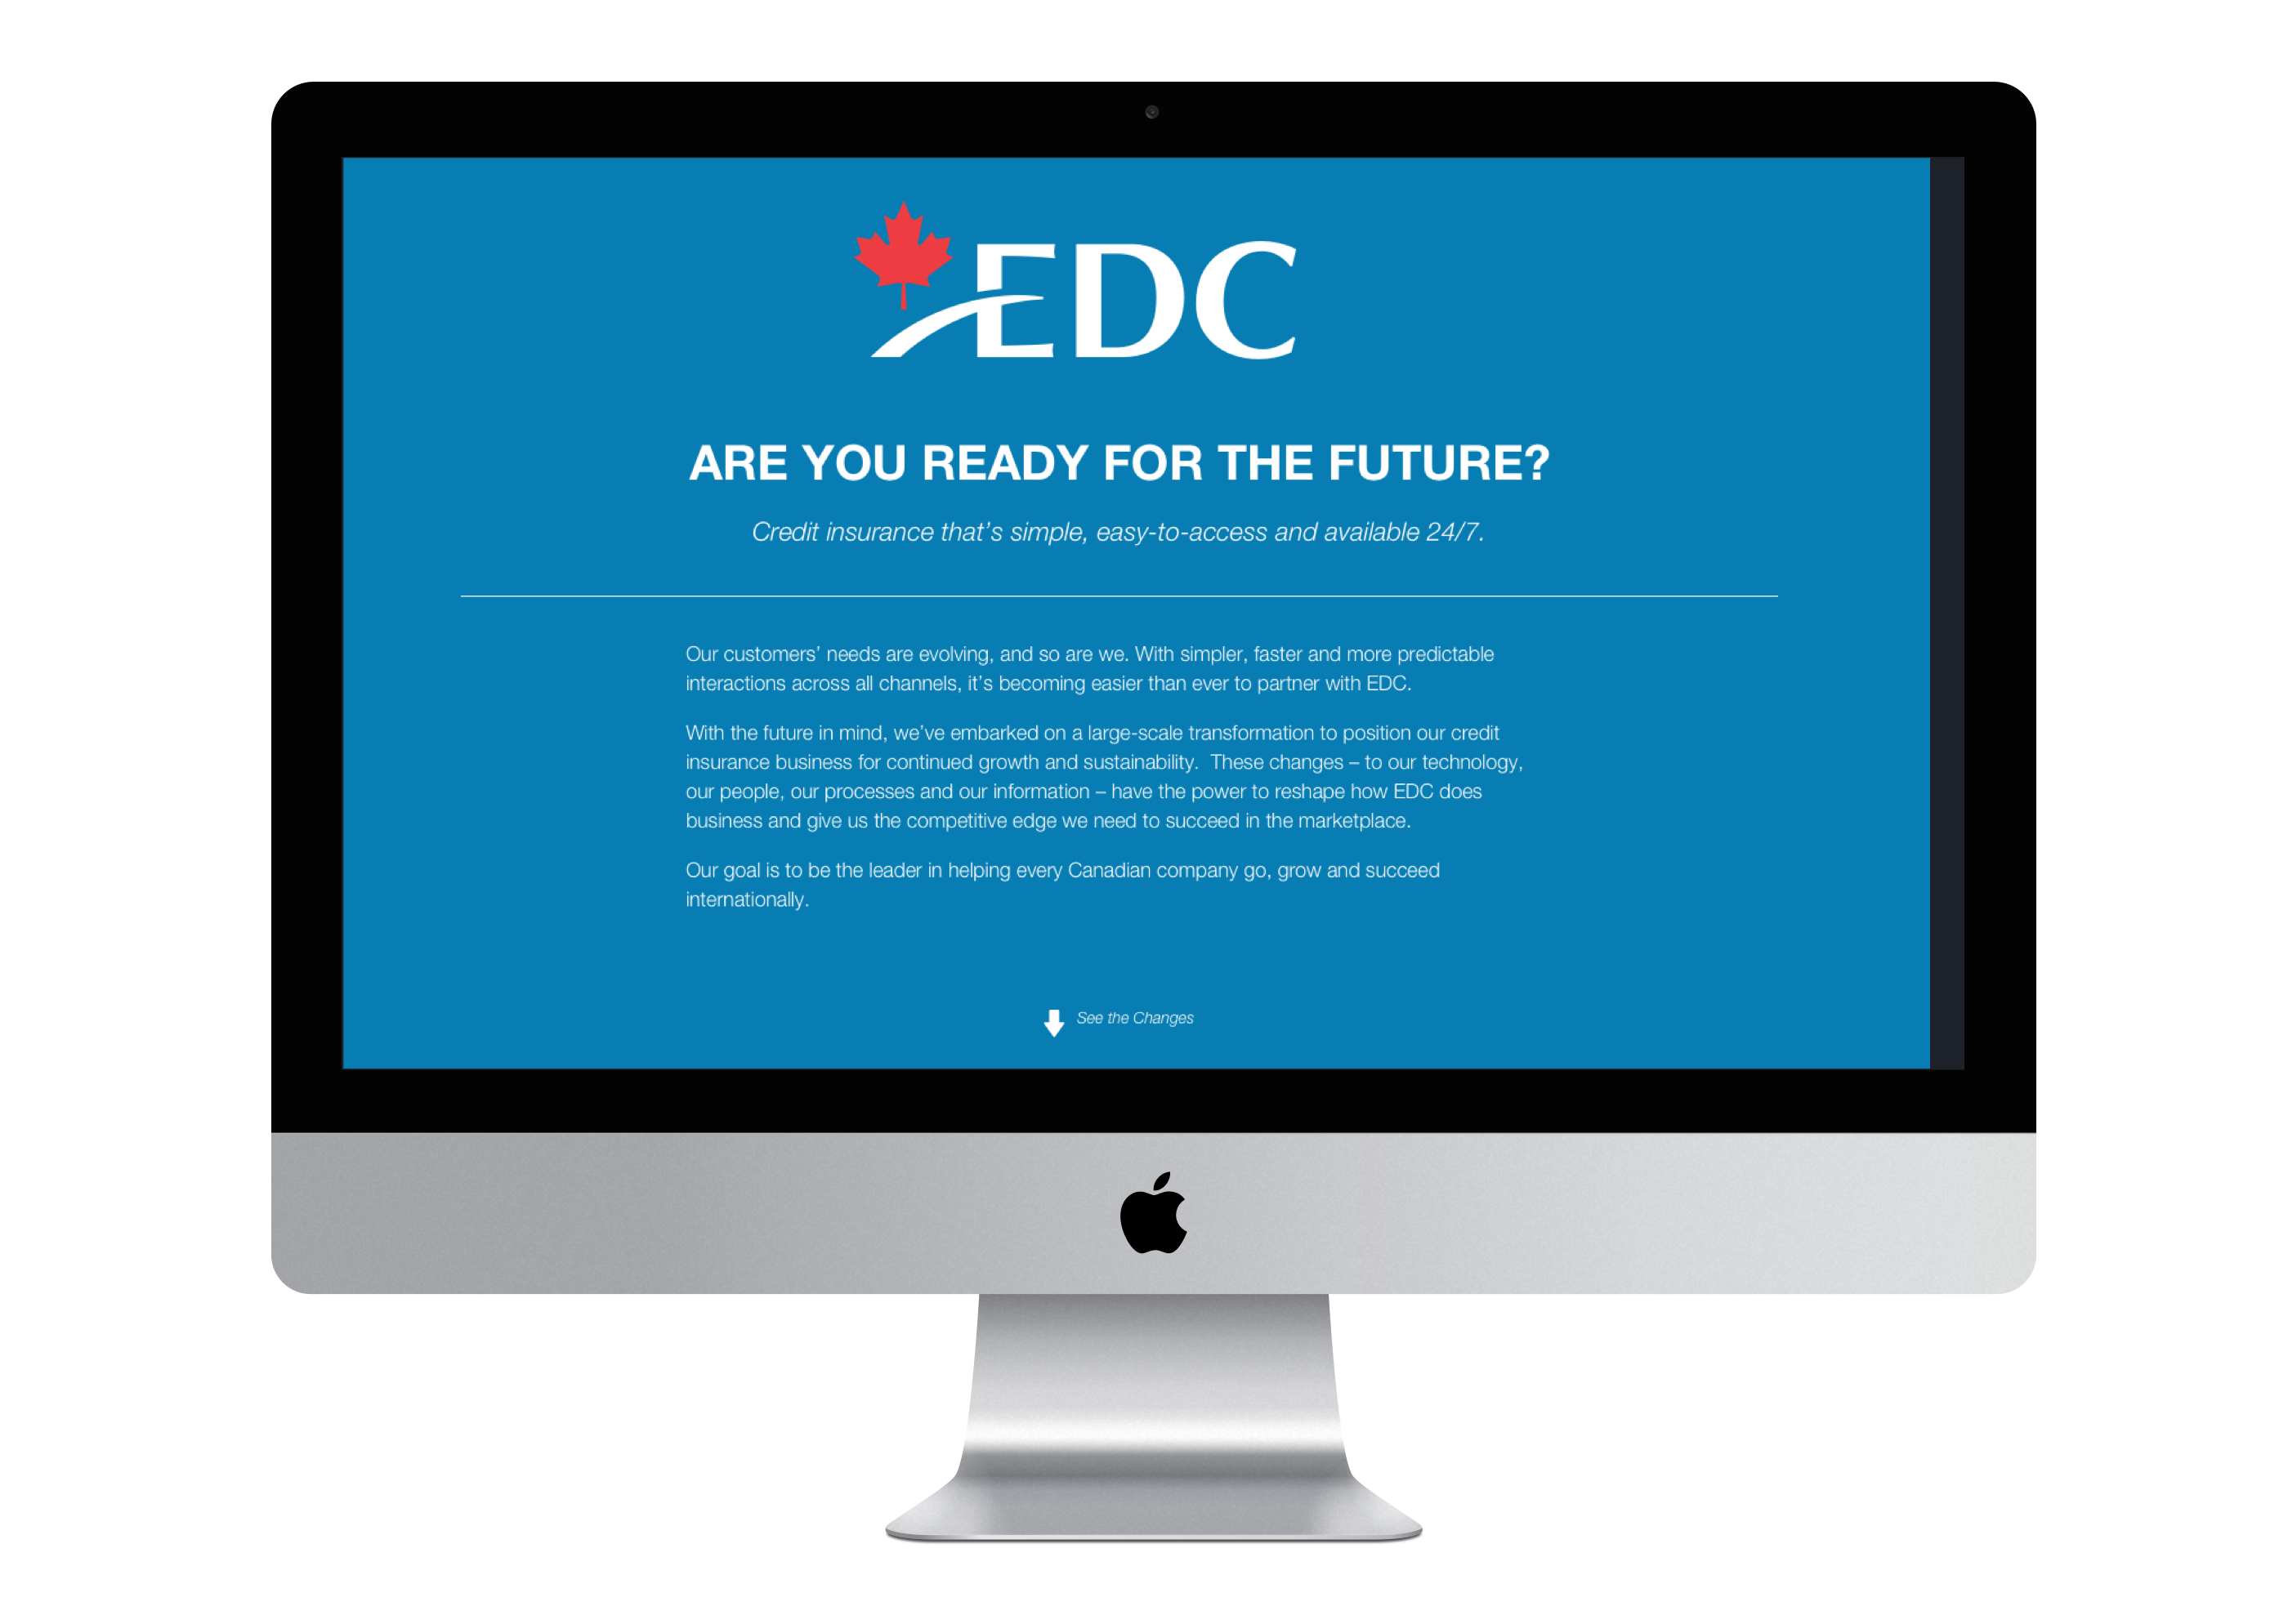 iMac with the top of EDC internal landing web page